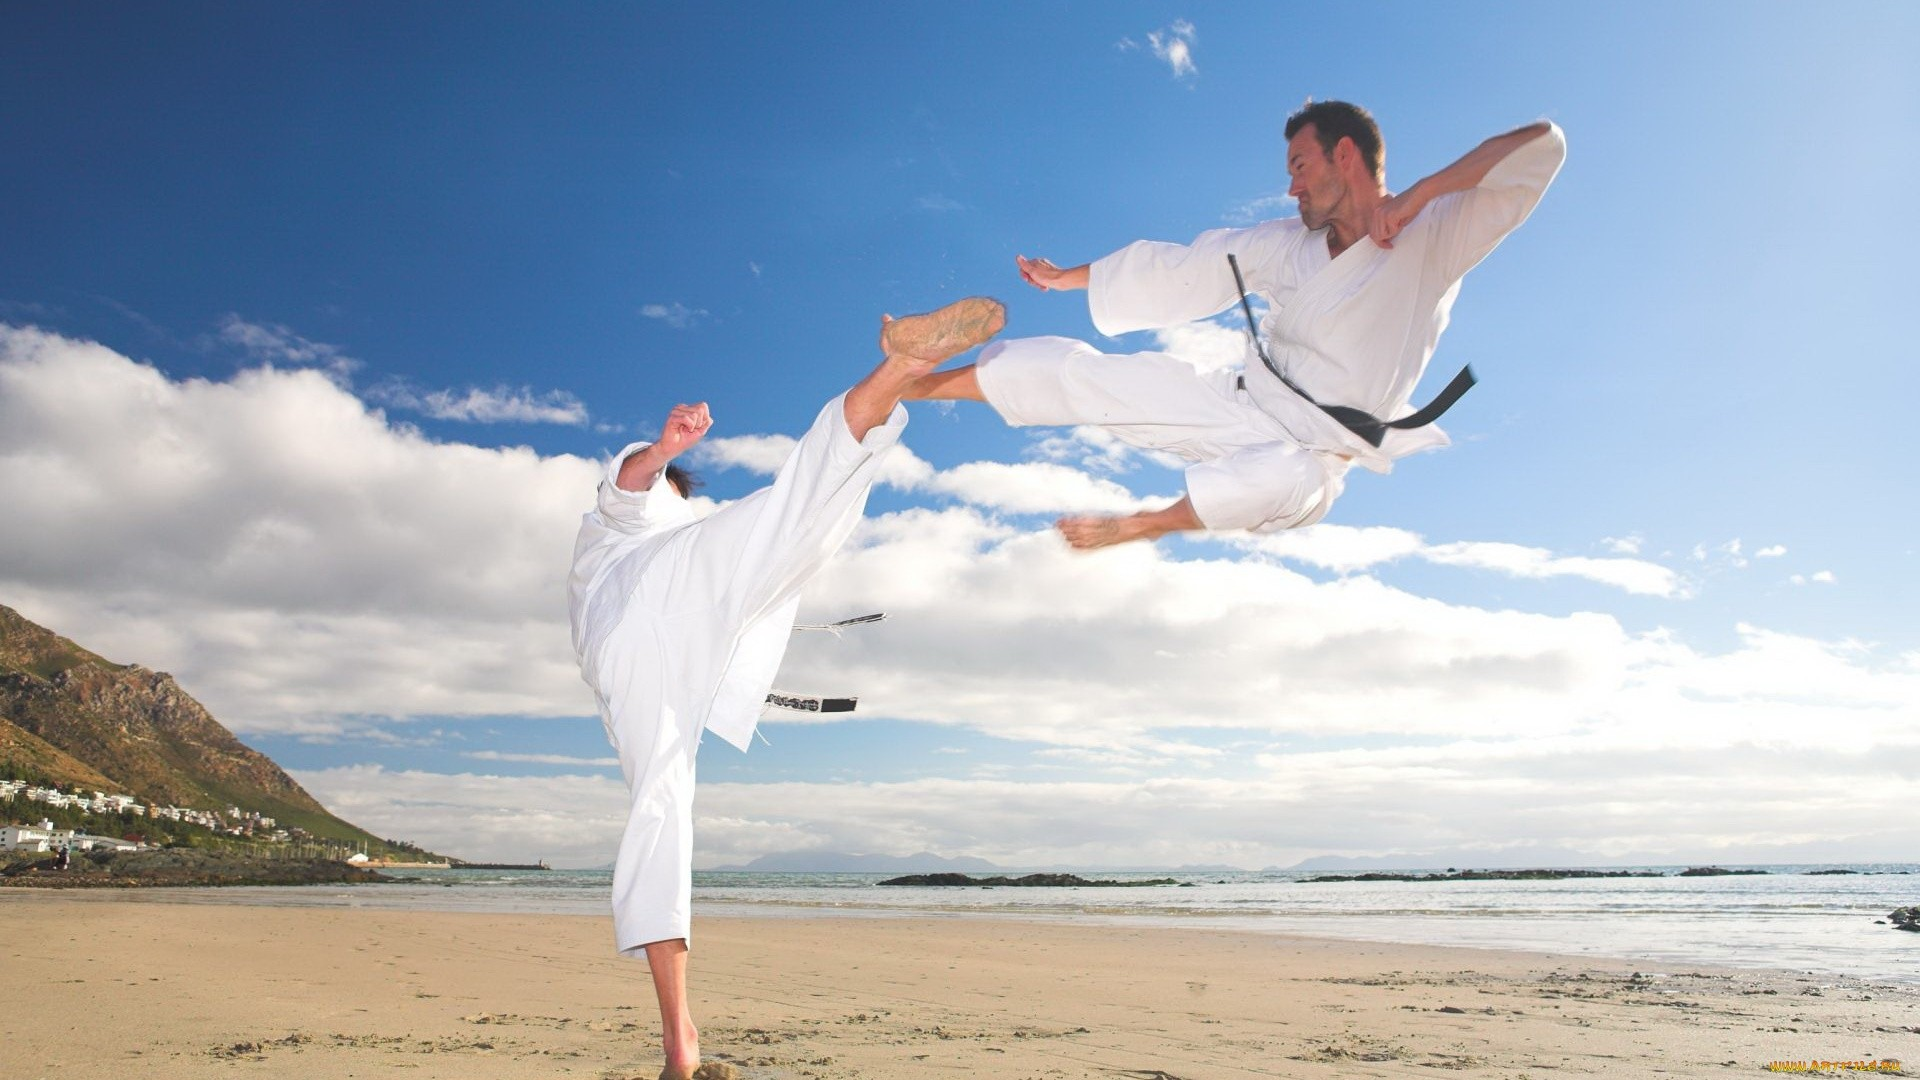 Karate wallpaper and themes